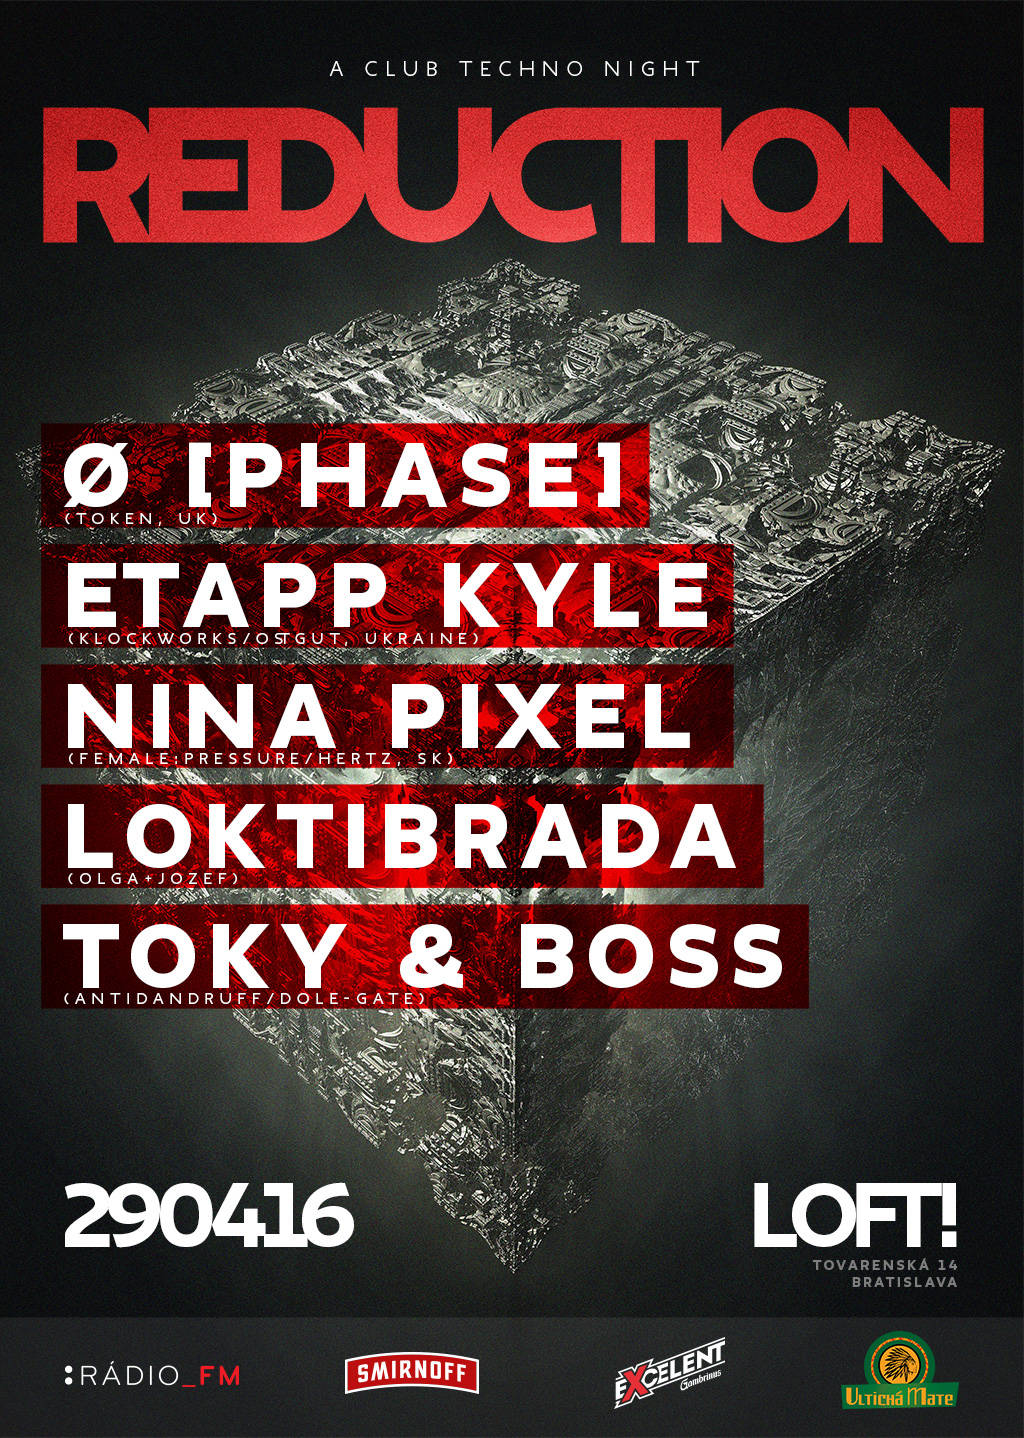 Techno Deluxe: REDUCTION 29.4. @ Loft!